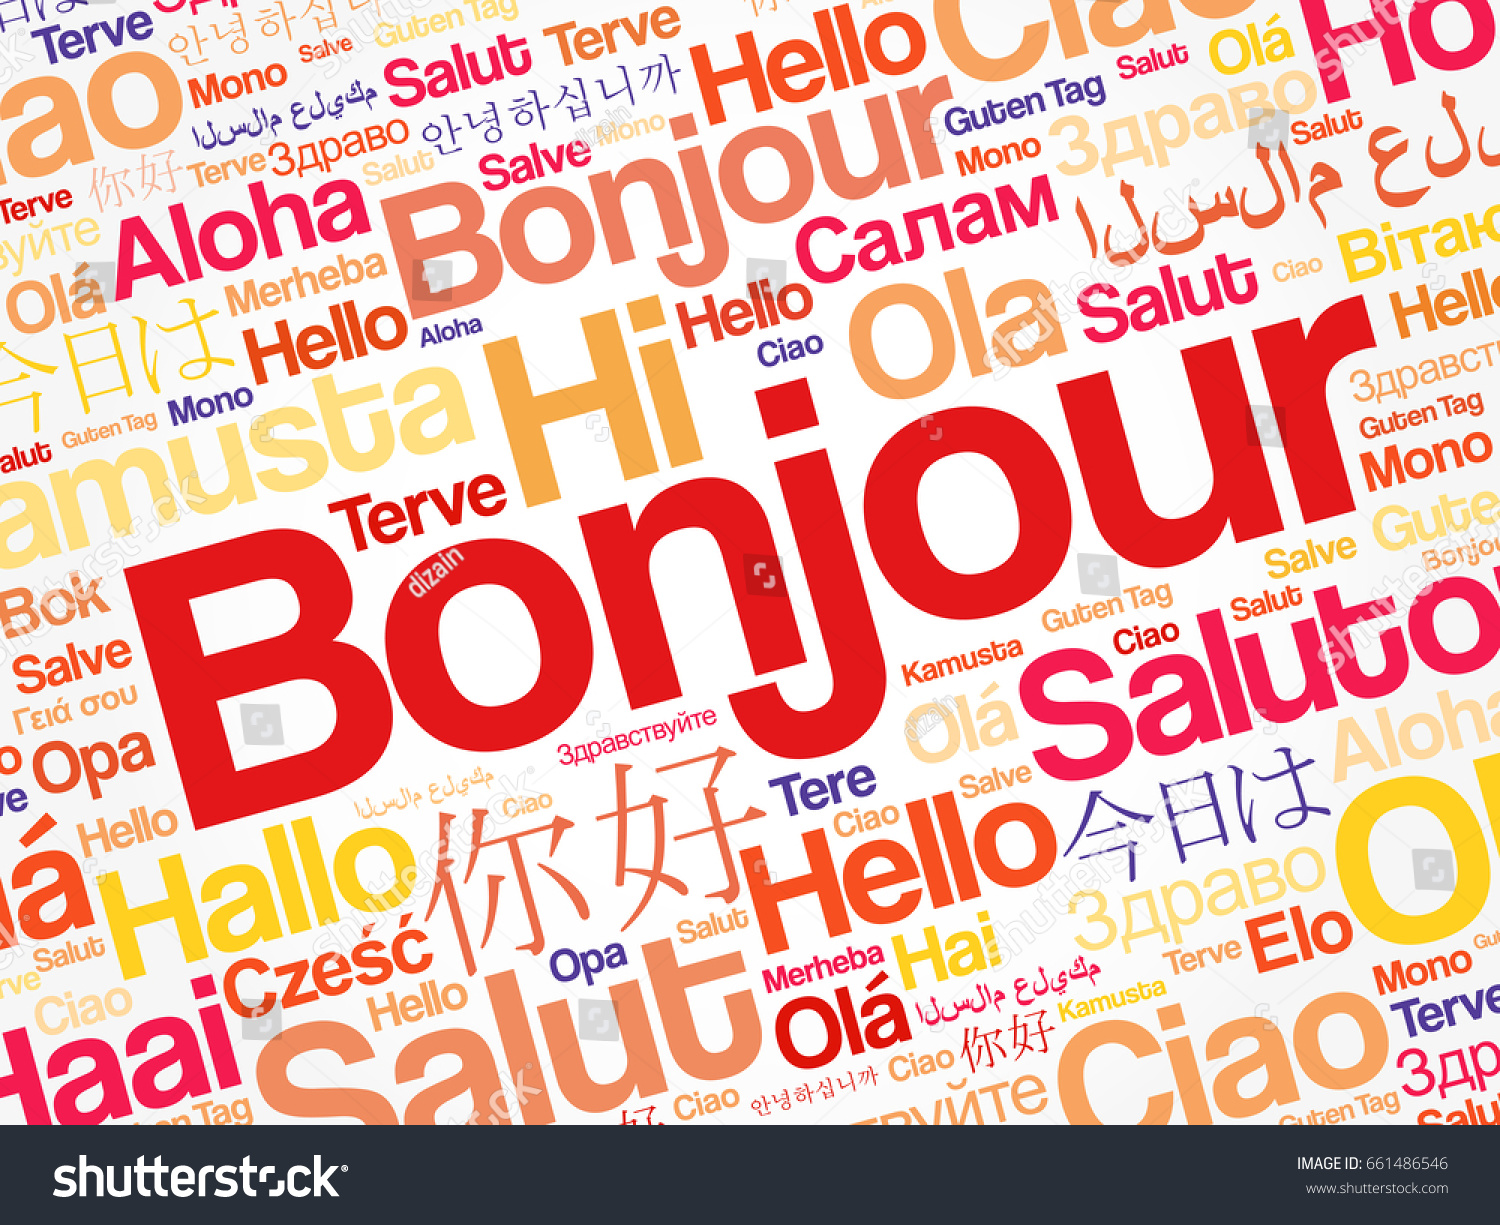 Bonjour hello greeting french word cloud stock vector 661486546 bonjour hello greeting in french word cloud in different languages of the world kristyandbryce Image collections